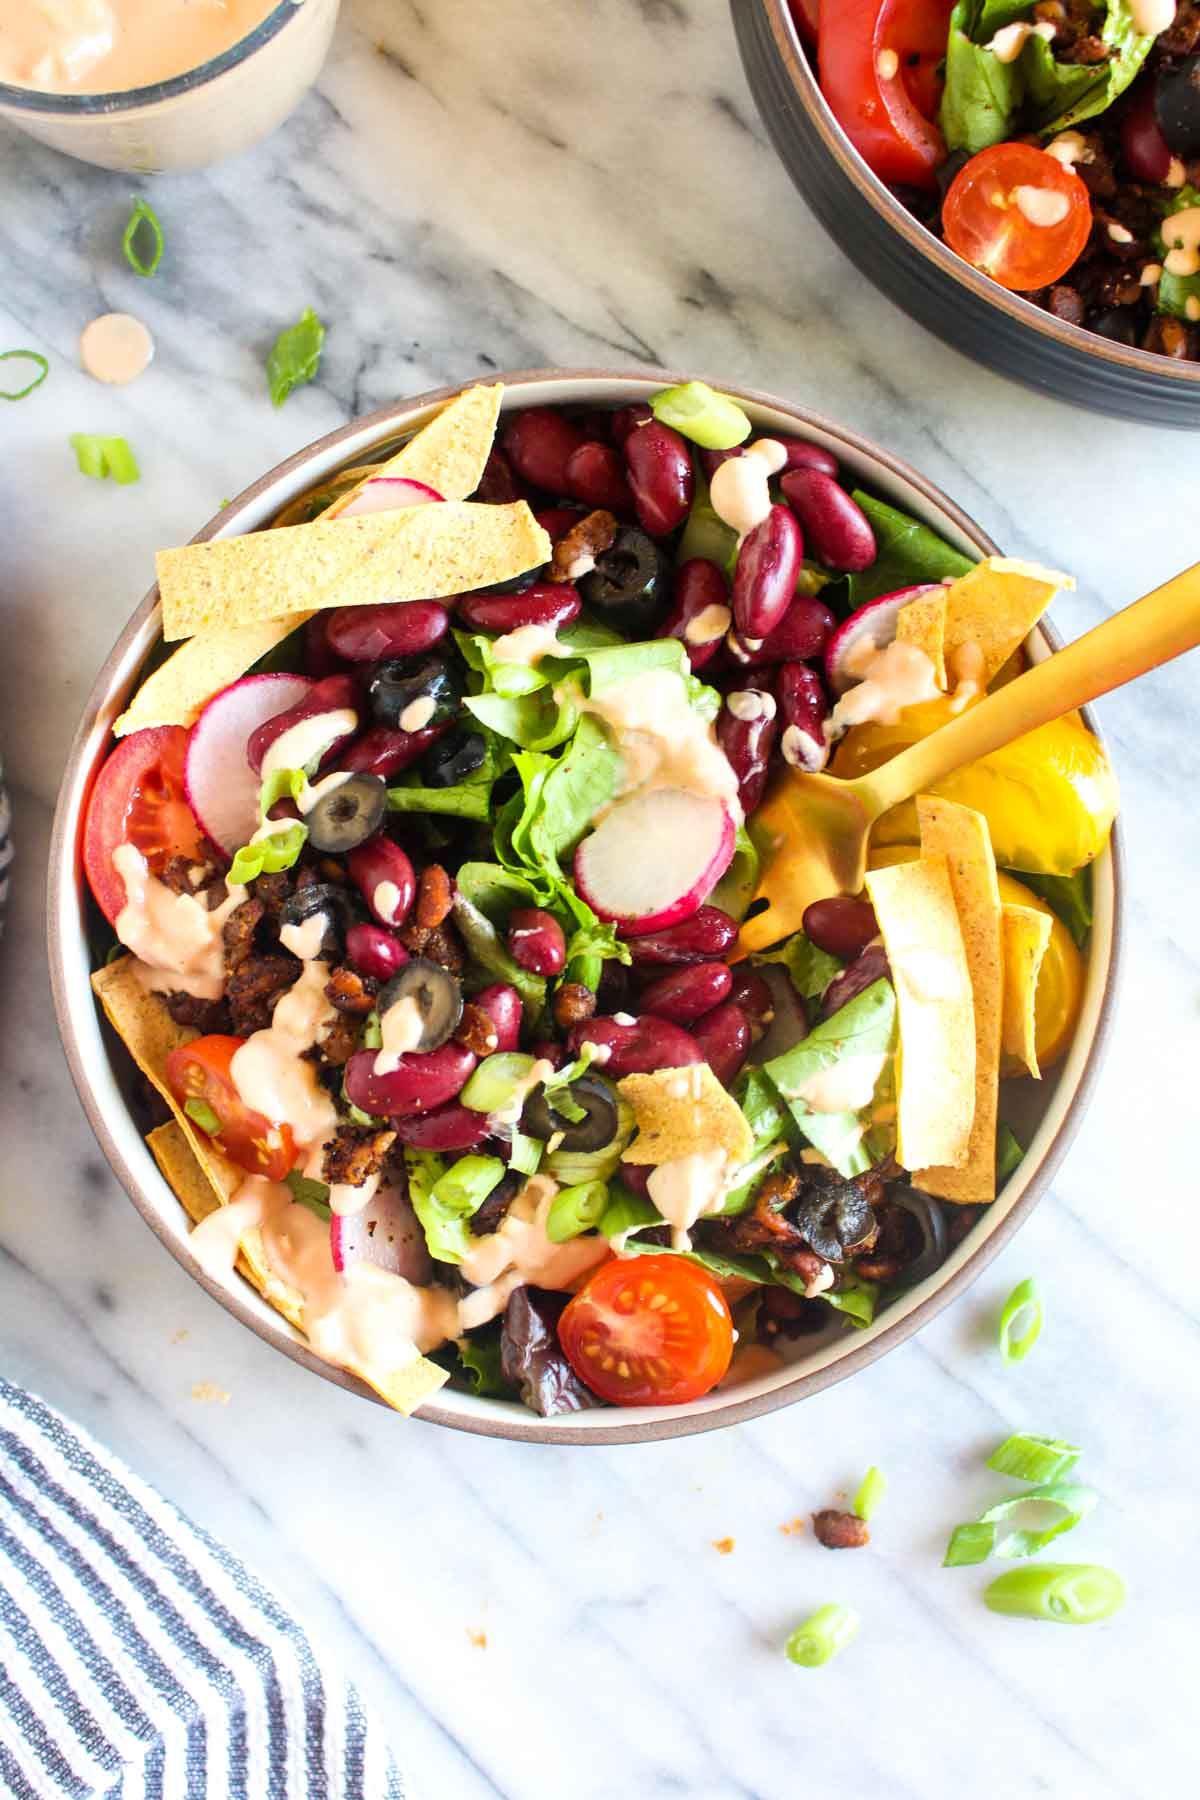 This Vegan Taco Salad is a no-cook weeknight dinner recipe that is full of flavors and textures! The homemade Thousand Island dressing is an easy to make healthy alternative to a store bought bottle. | CatchingSeeds.com